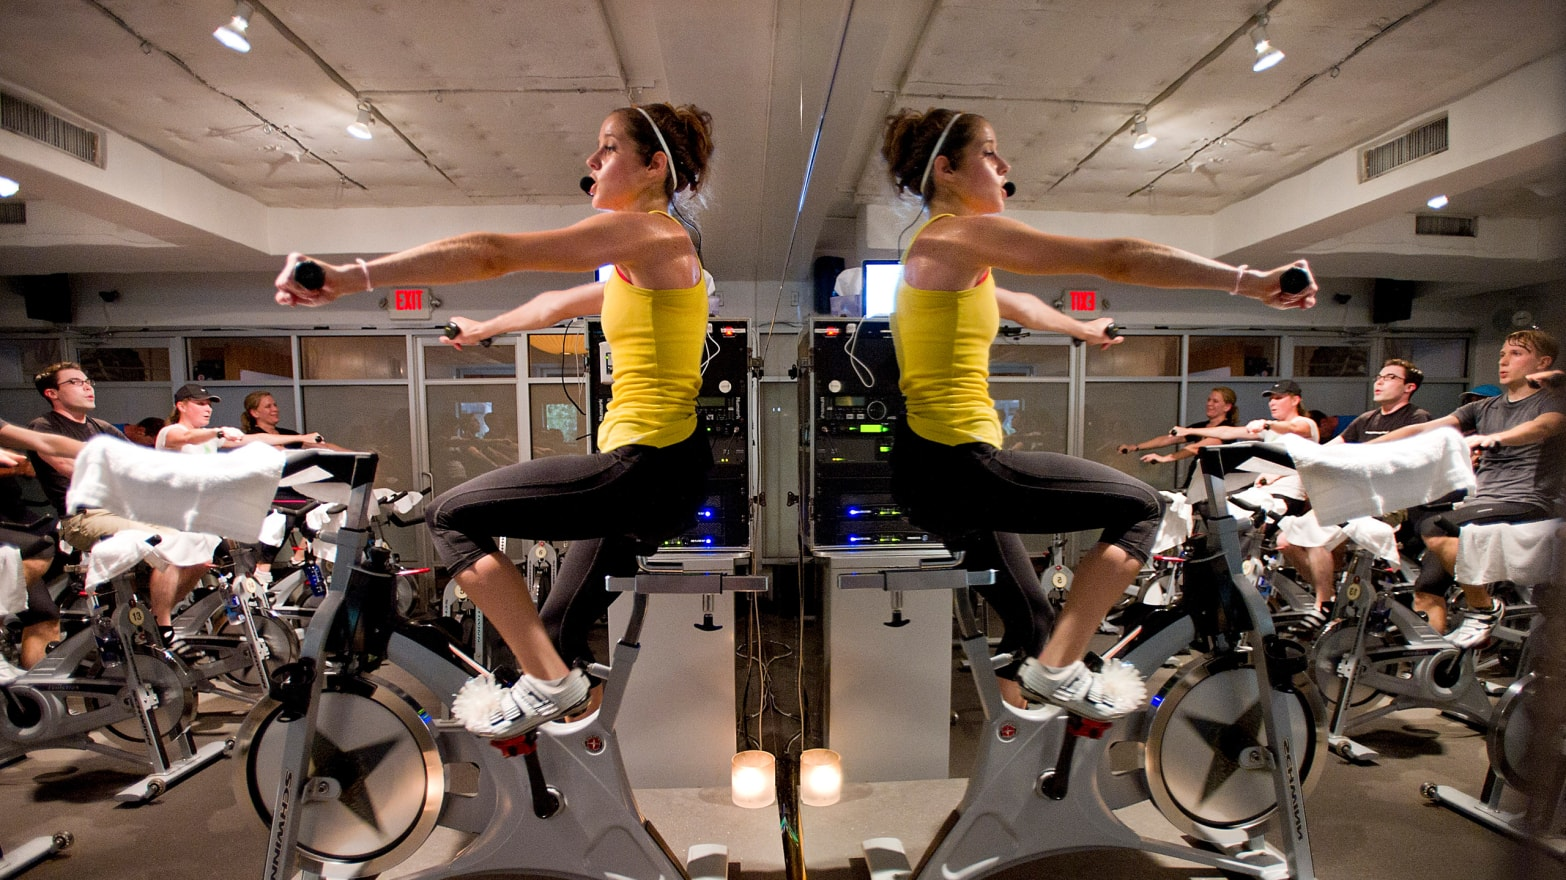 SoulCycle Is a Booming Exercise Chain for the 1 Percent